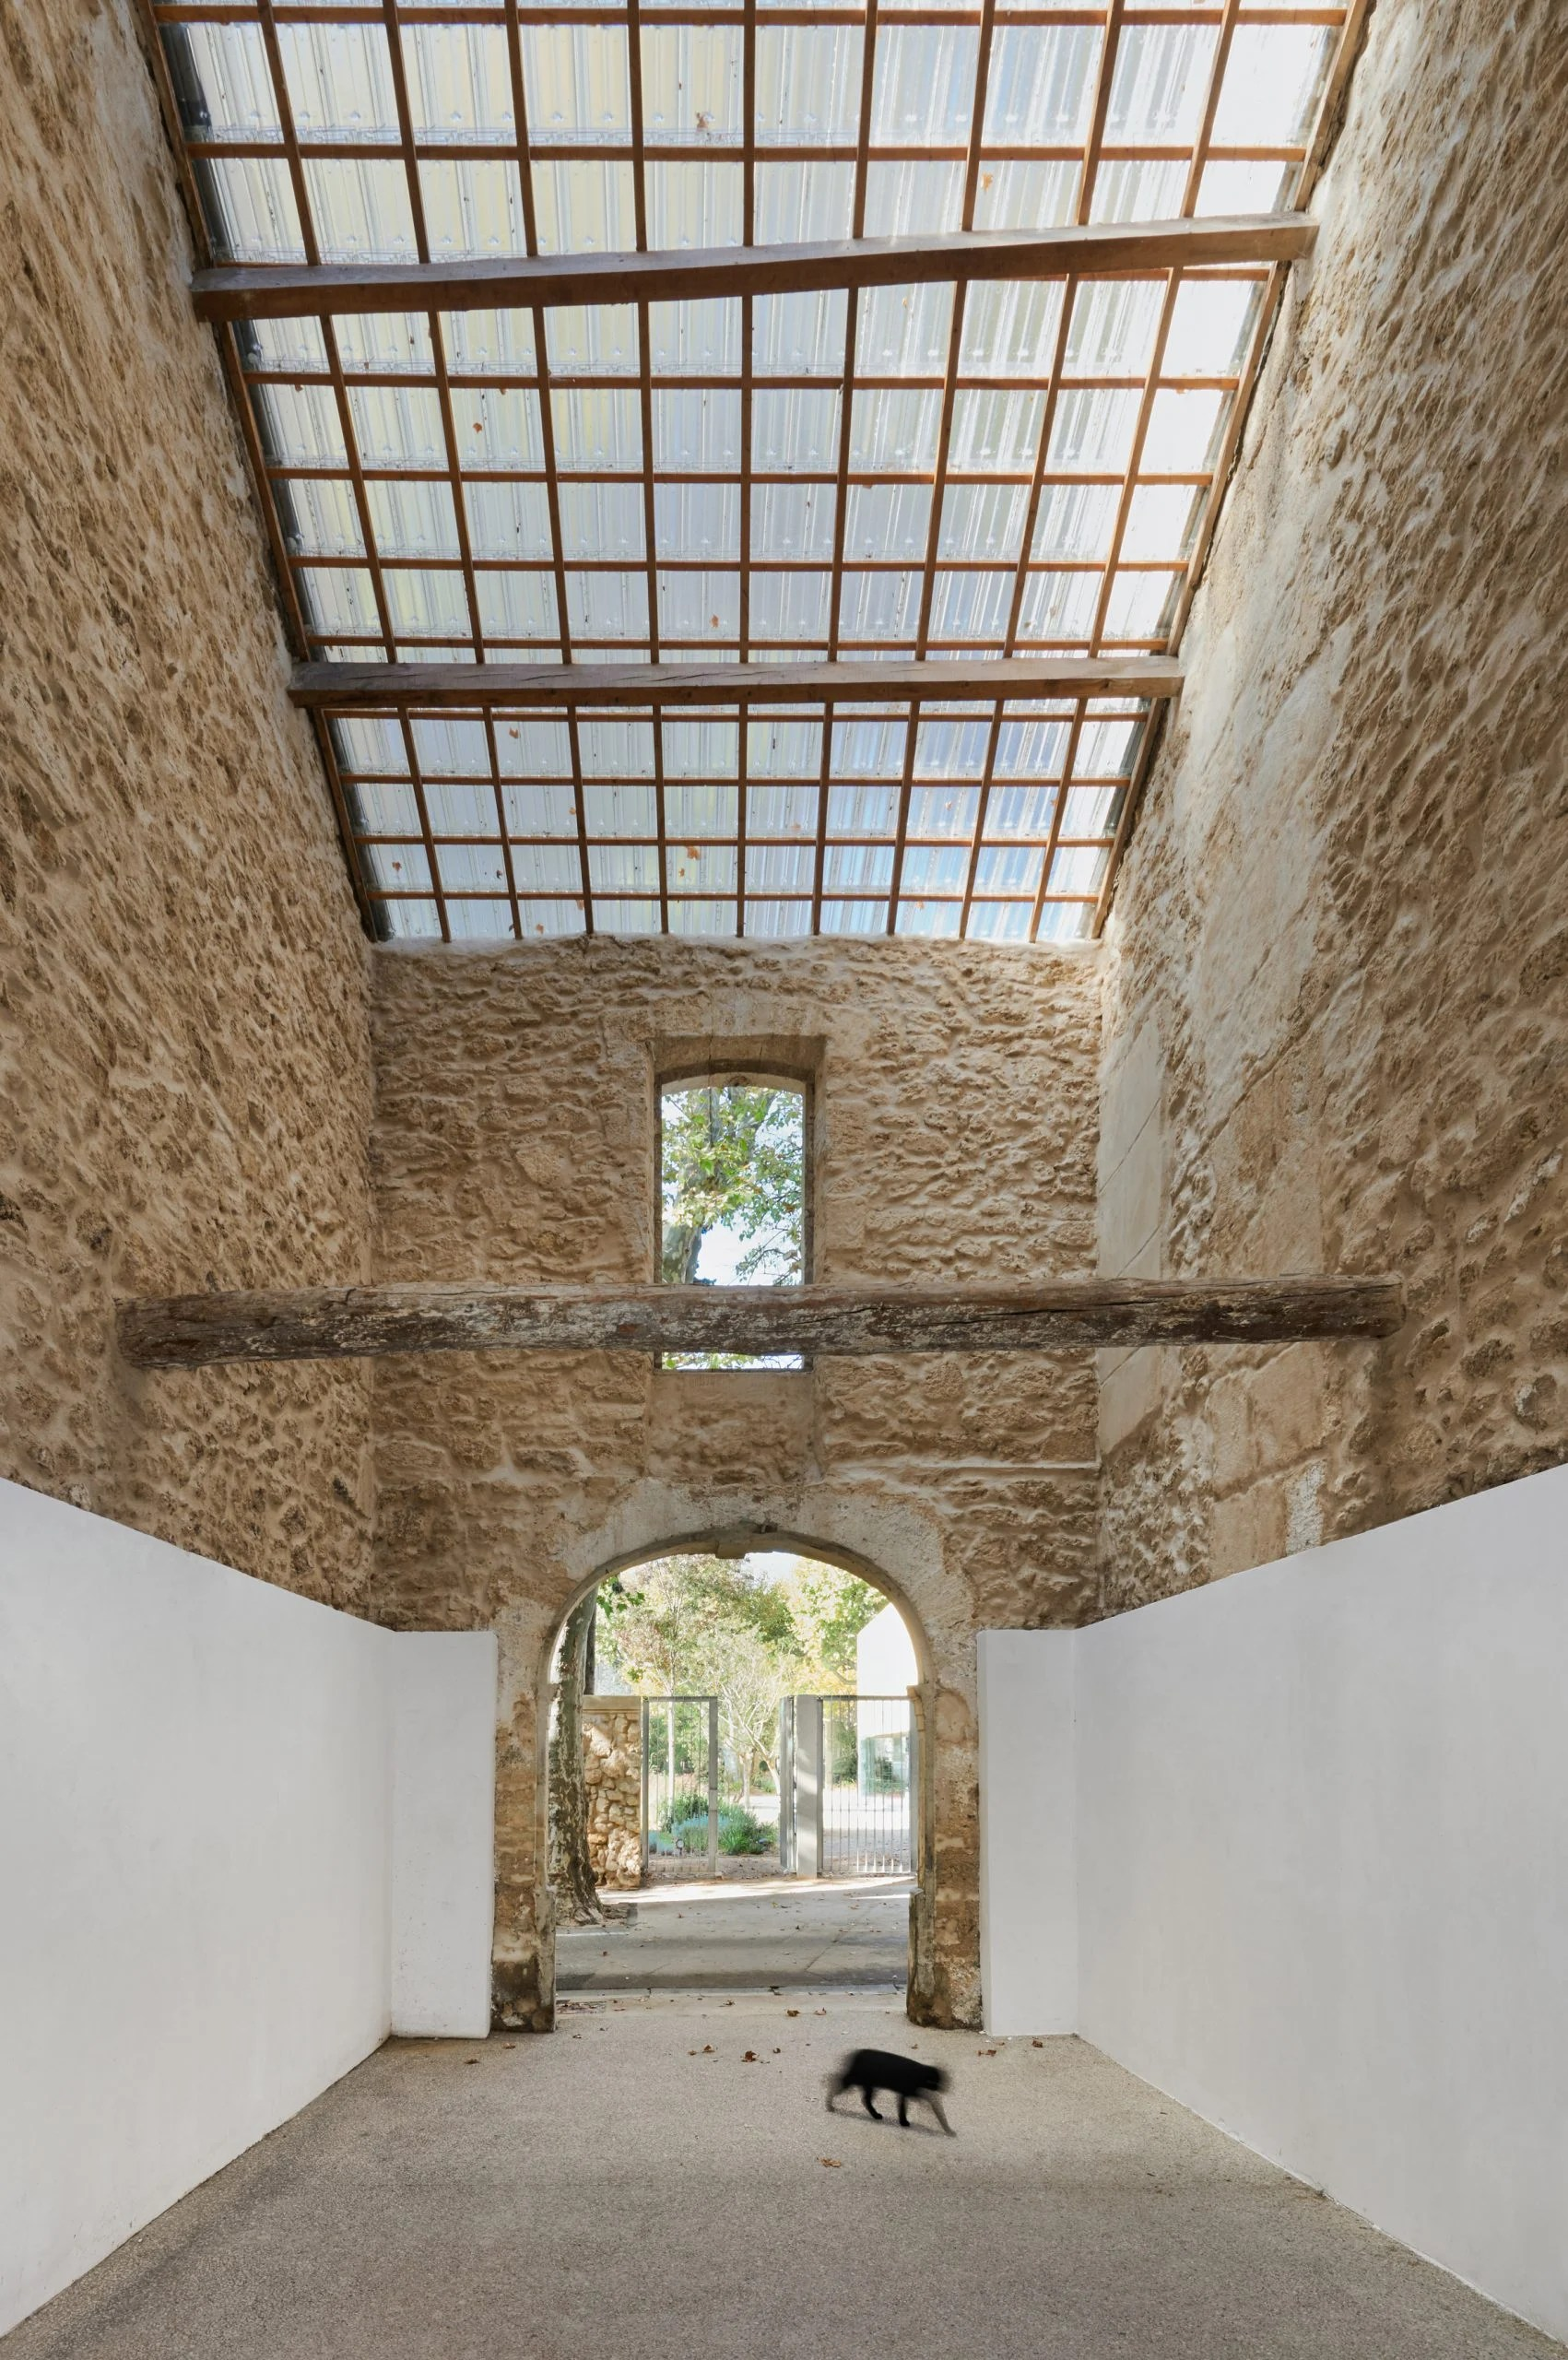 Original beams and stone are preserved in the passageway